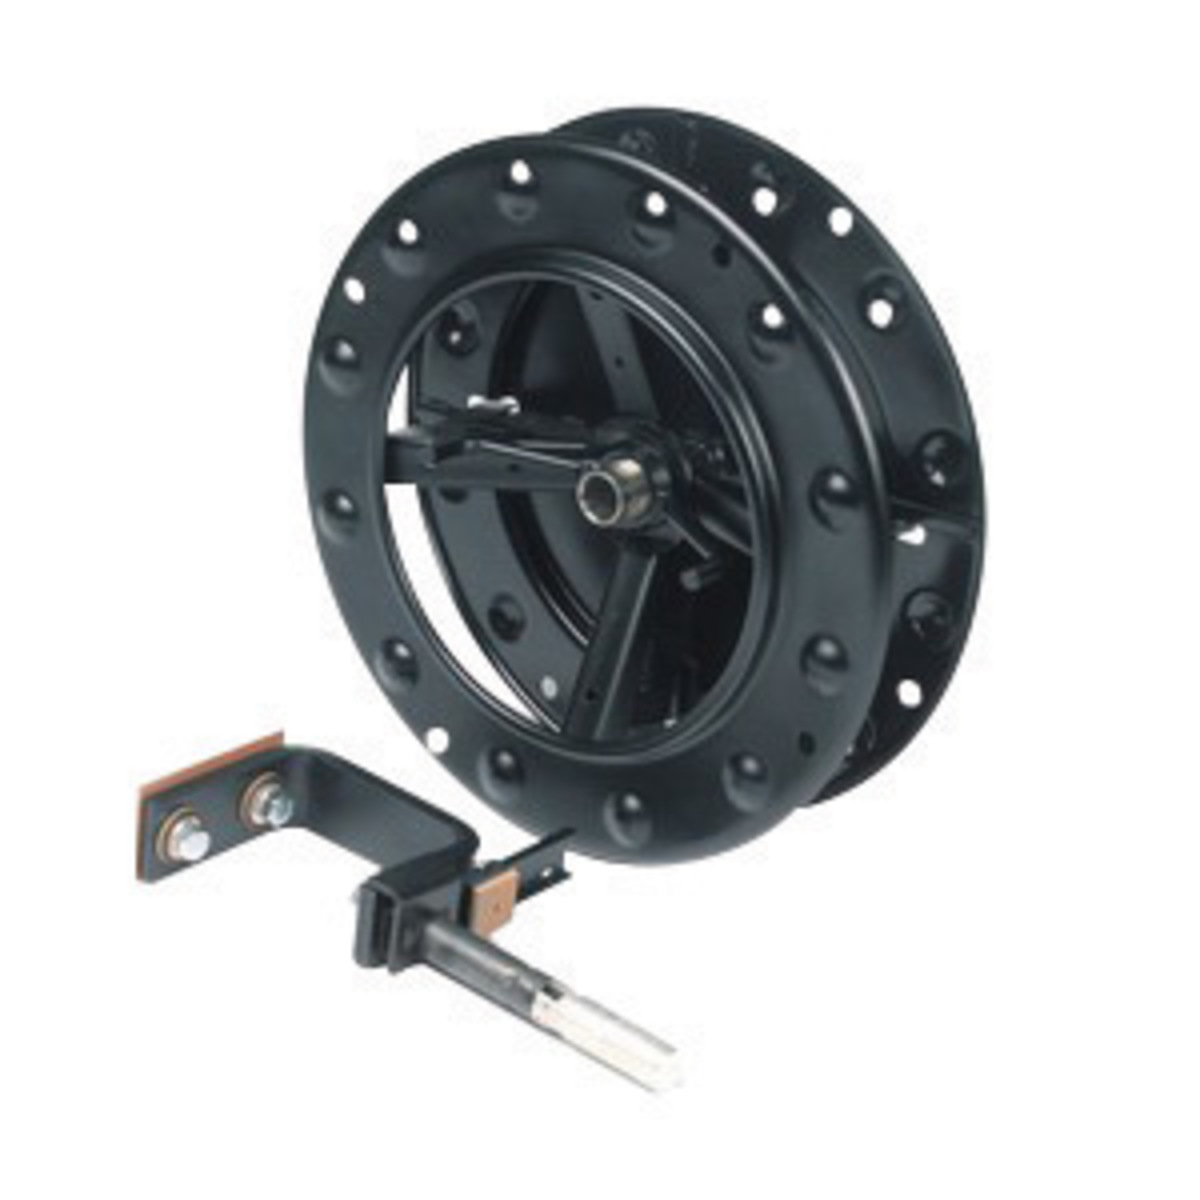 Electrical Wire Spool : Airgas link lincoln electric wire reel assembly